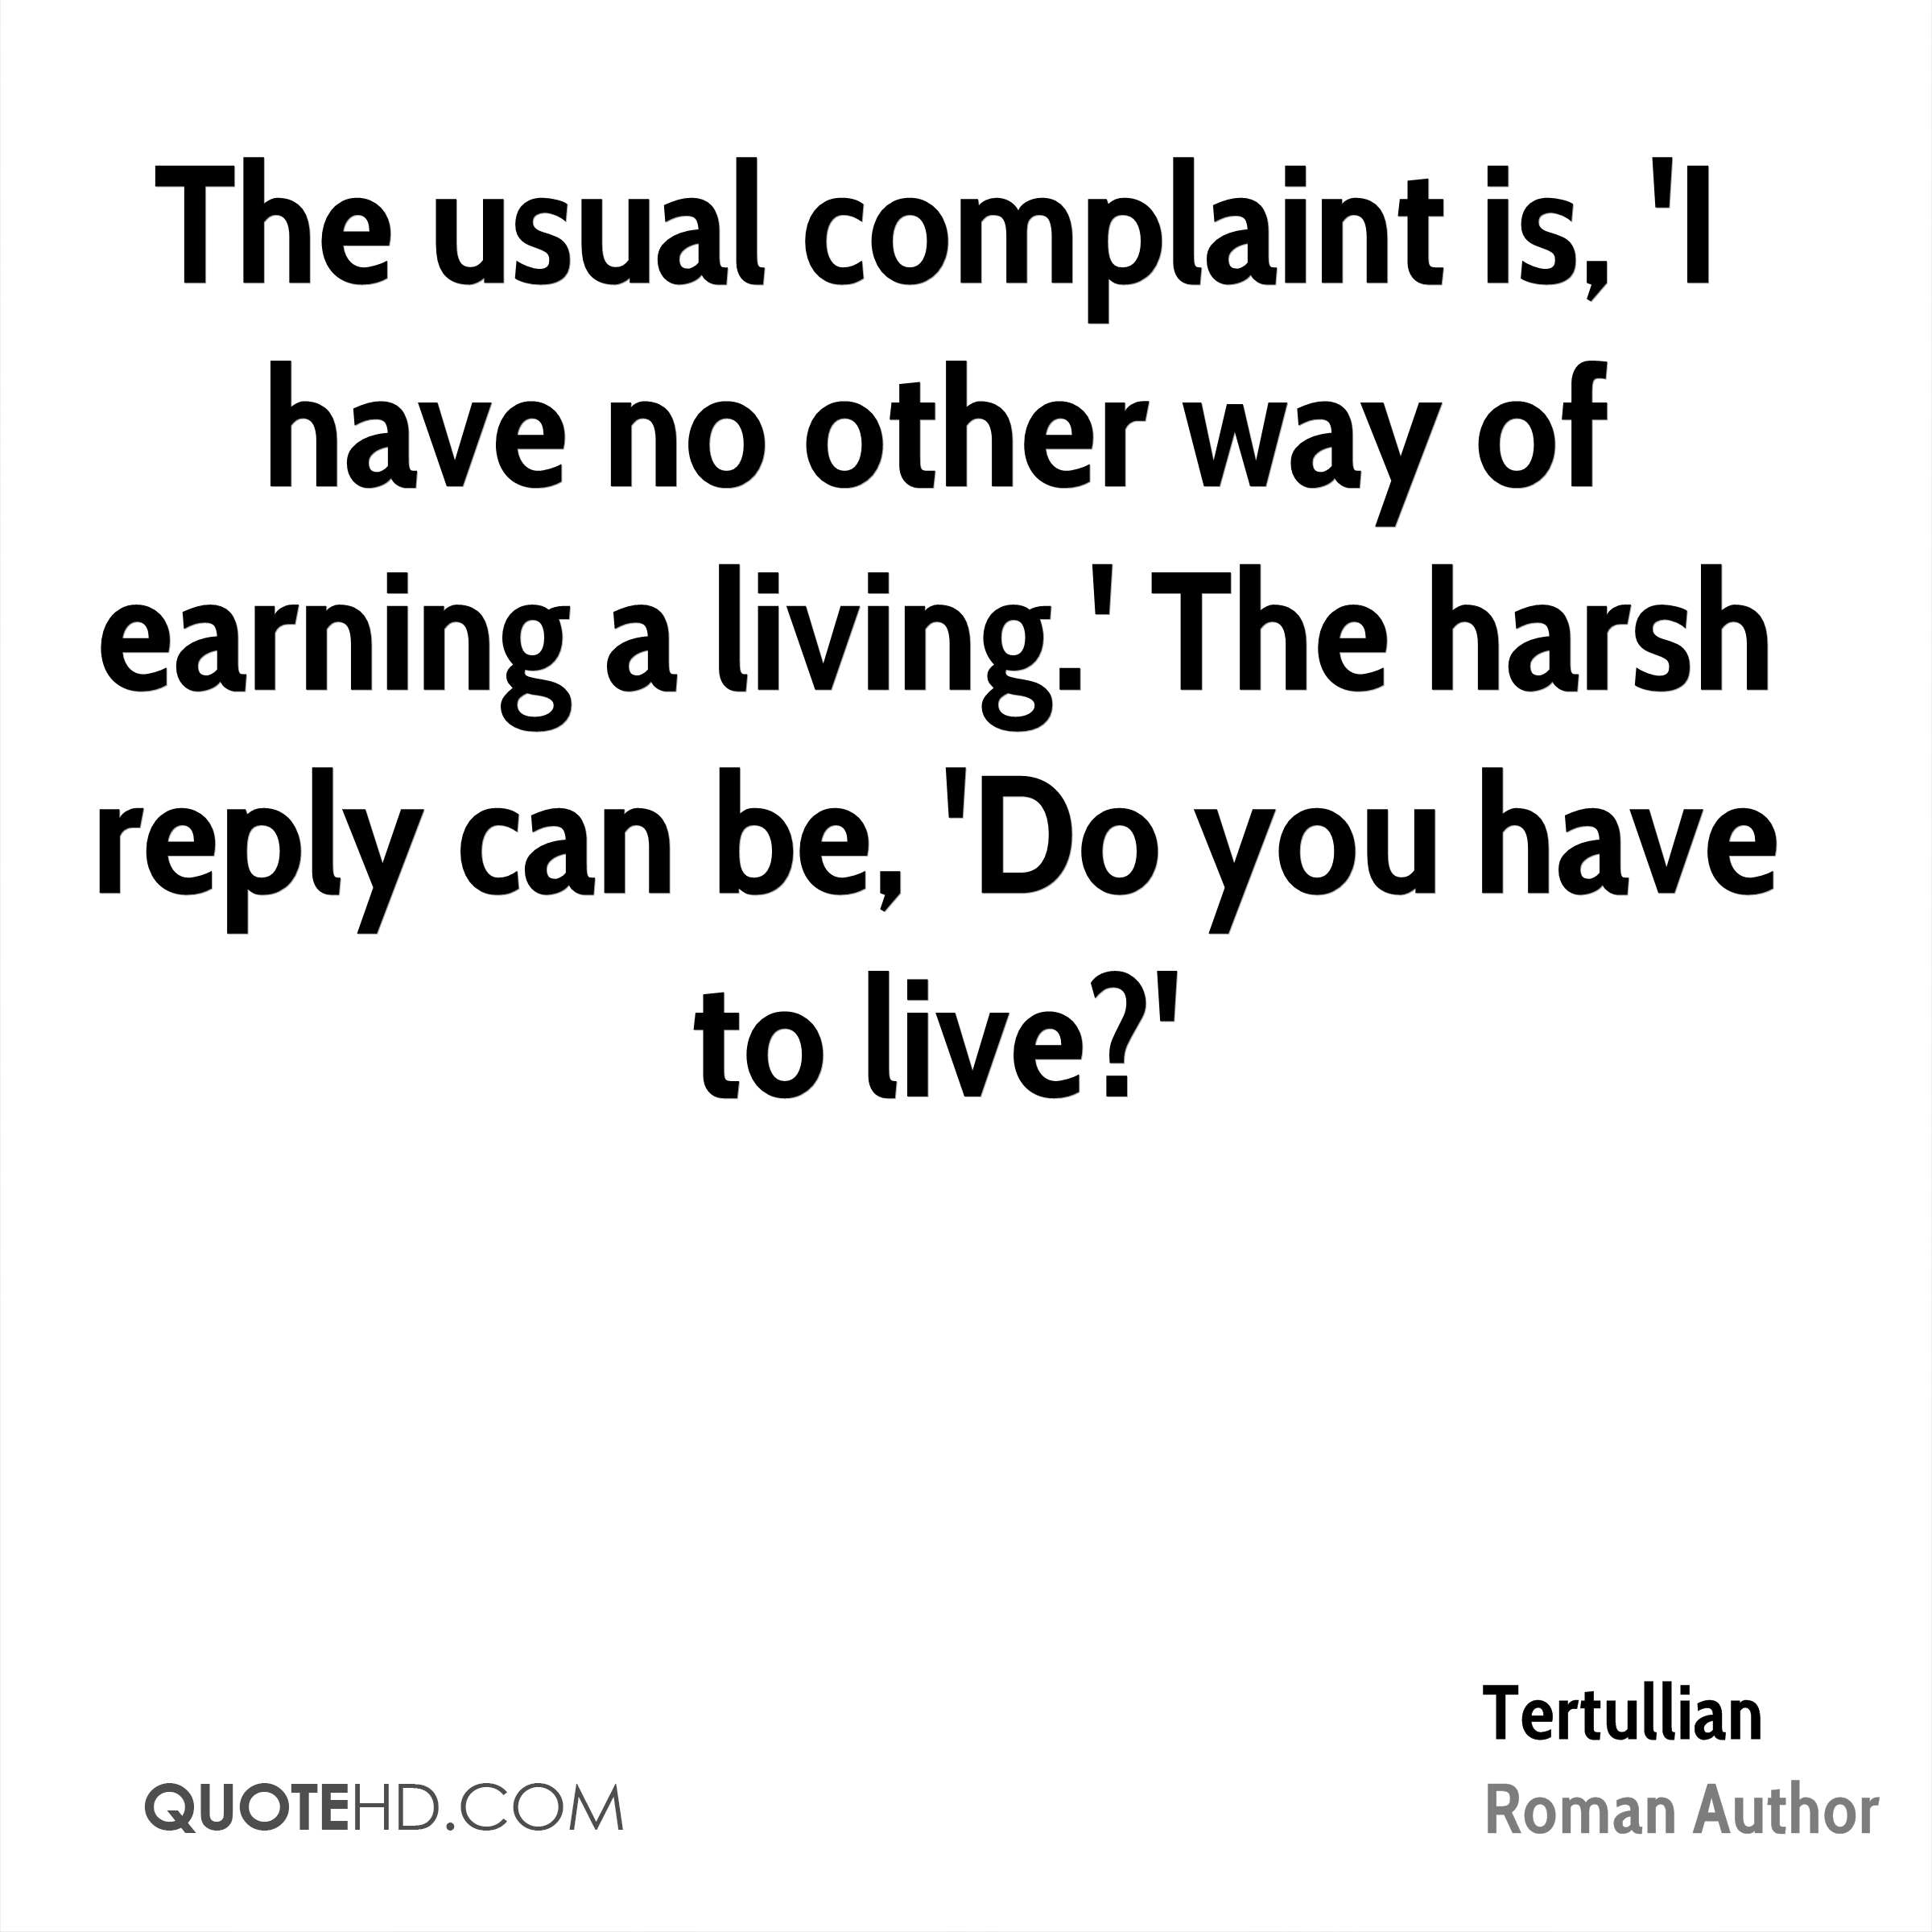 The usual complaint is, 'I have no other way of earning a living.' The harsh reply can be, 'Do you have to live?'